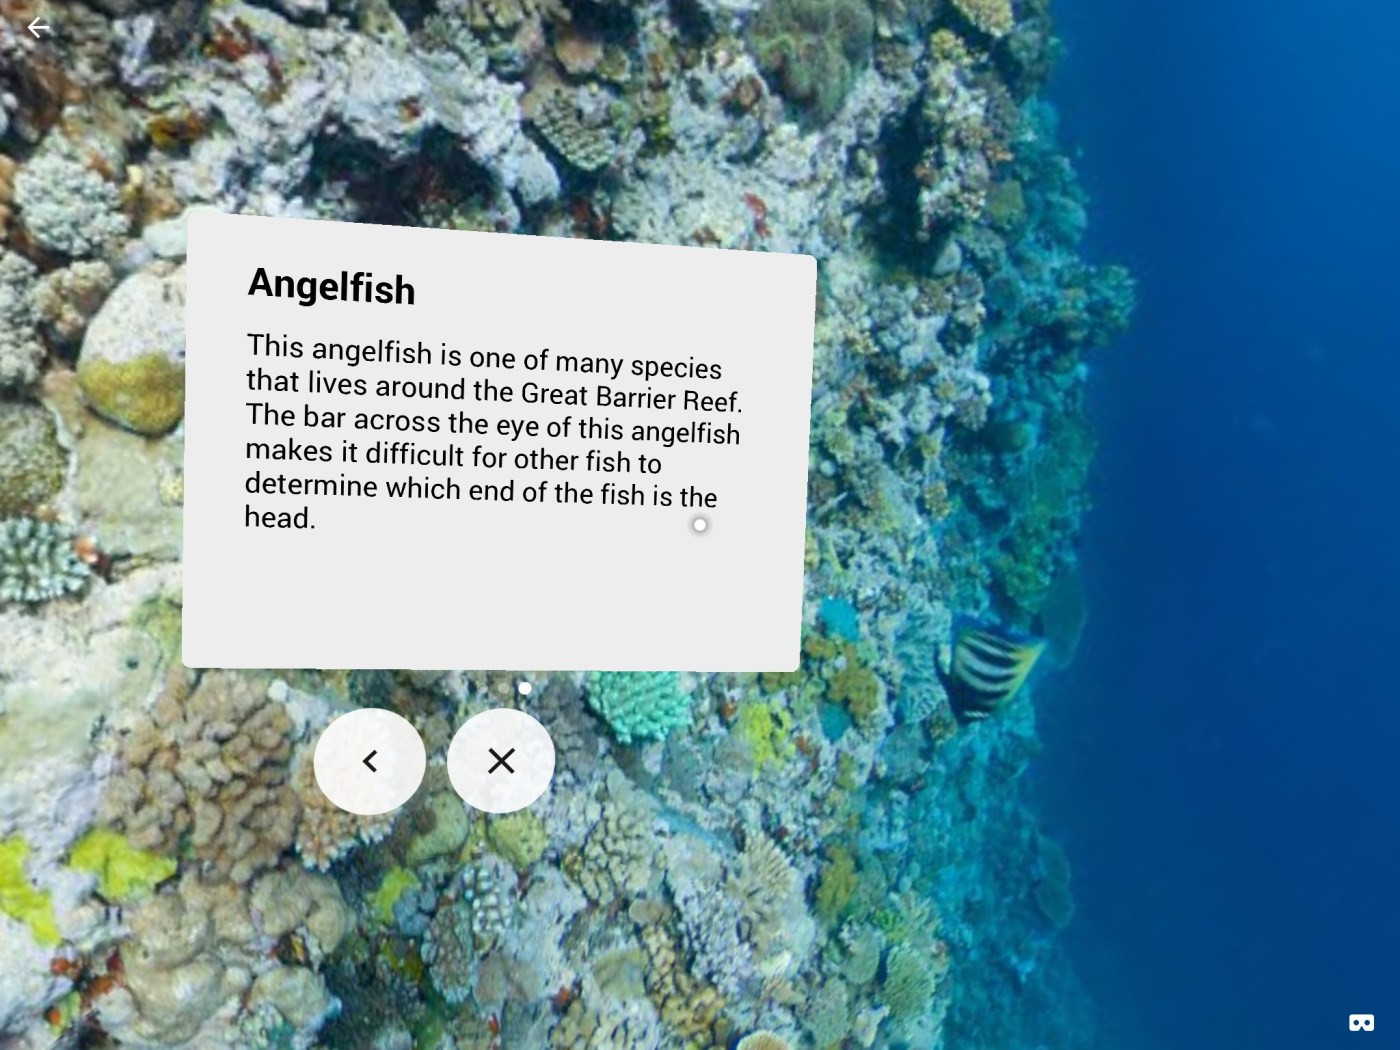 A screenshot of the Google expeditions app that shows an Angelfish, along with a text description of the angelfish